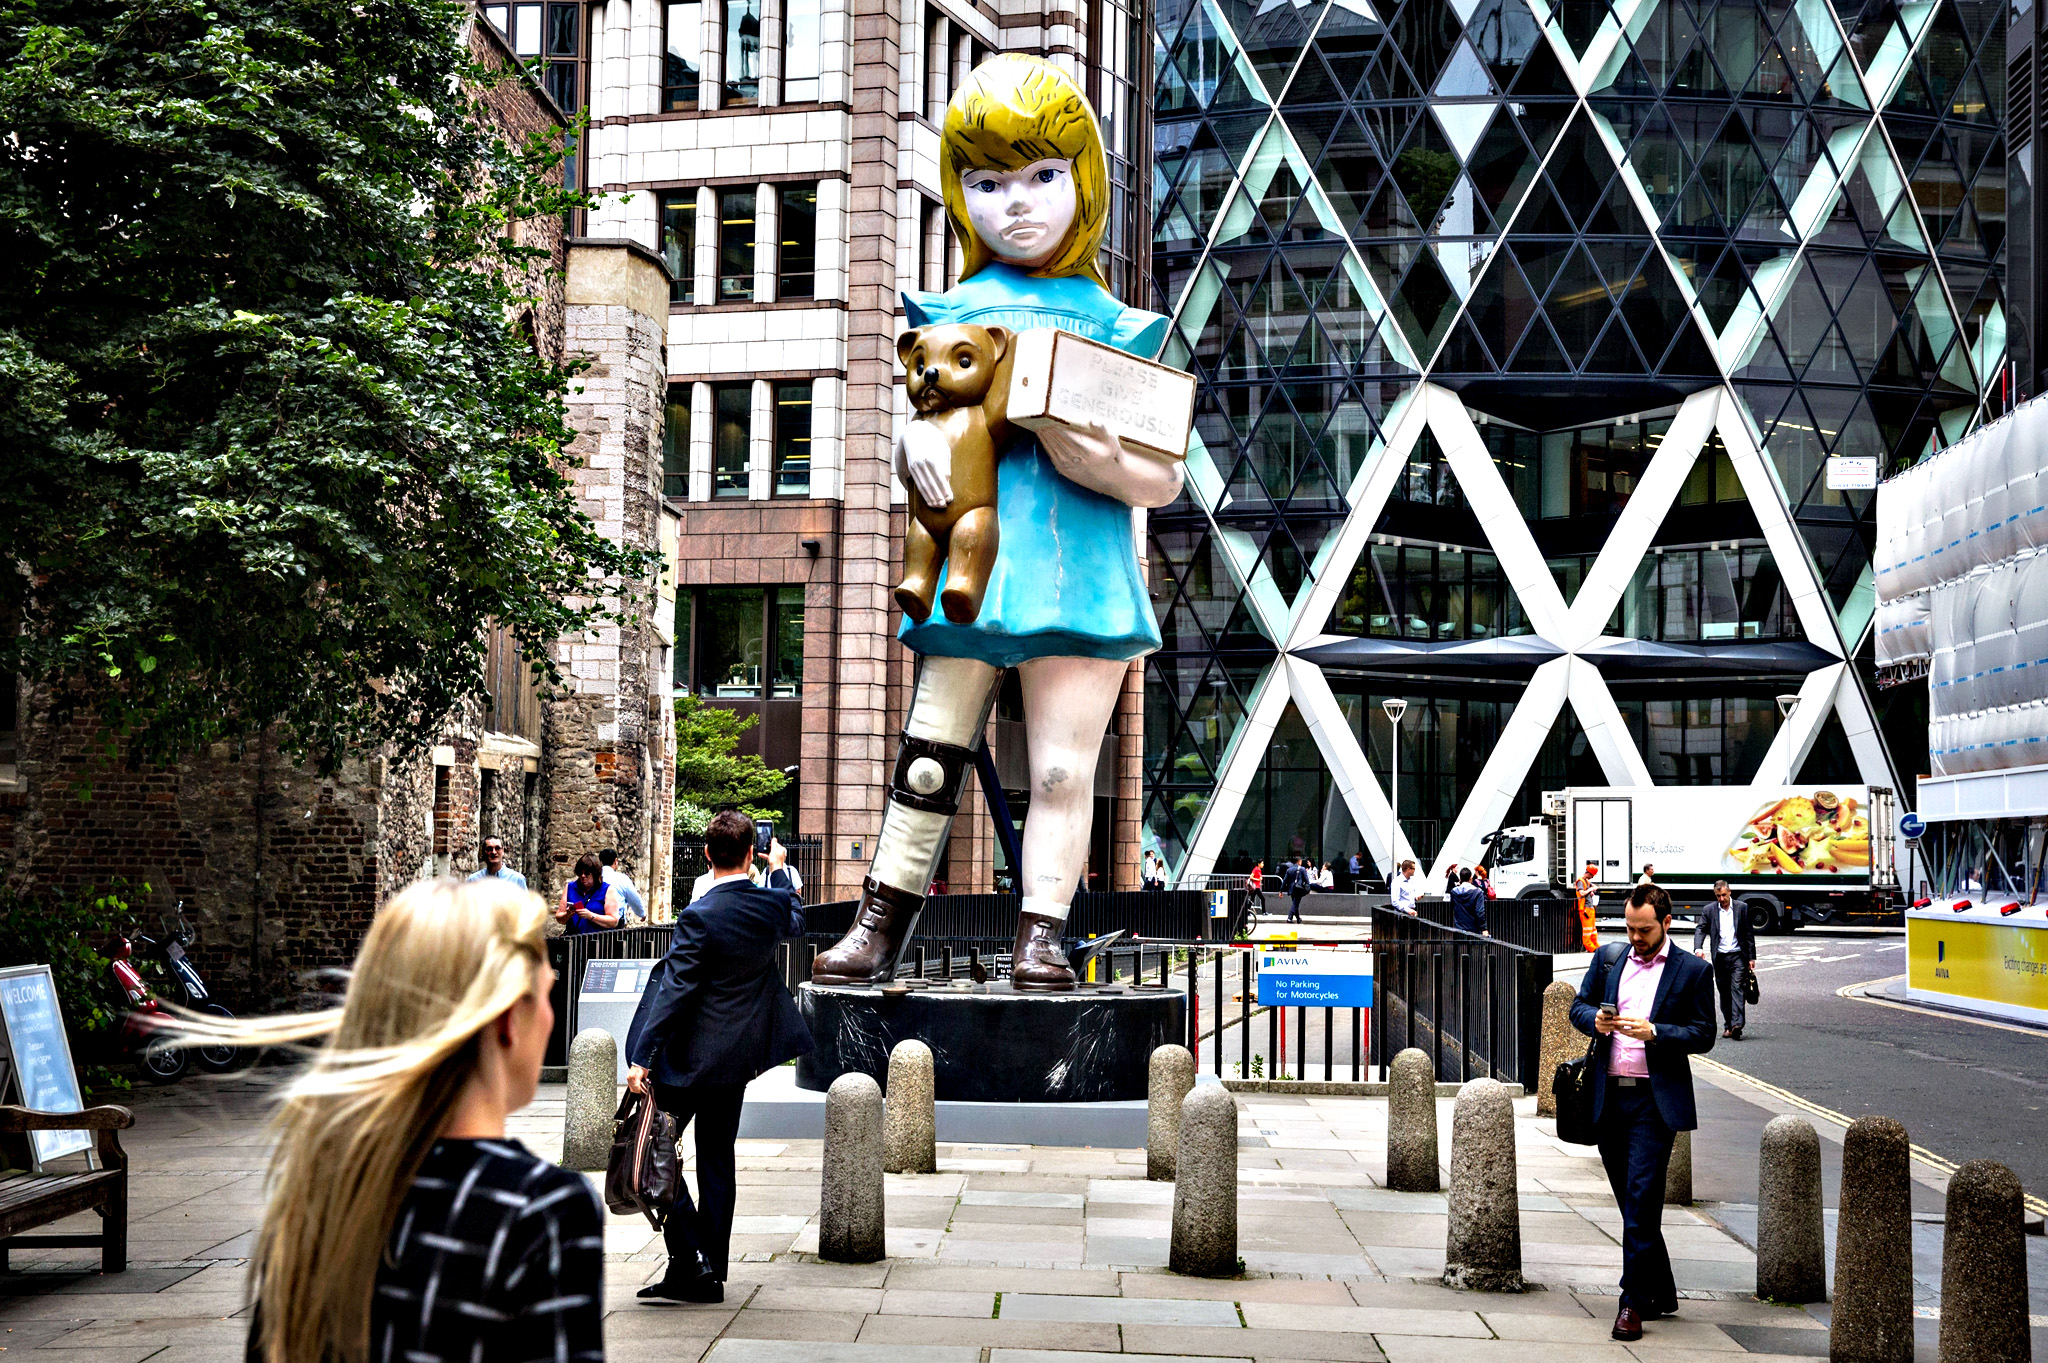 City workers walk past Damien Hirst's sculpture 'Charity' opposite the Gherkin building on July 16, 2015 in London, England.  'Charity' is a 22-foot bronze sculpture based on 1960s collection boxes for the charity Scope. The sculpture is of a young disabled girl holding a teddy bear and a request to 'Please Give Generously' whilst her back has been opened with a crow bar with the donated coins falling at her feet